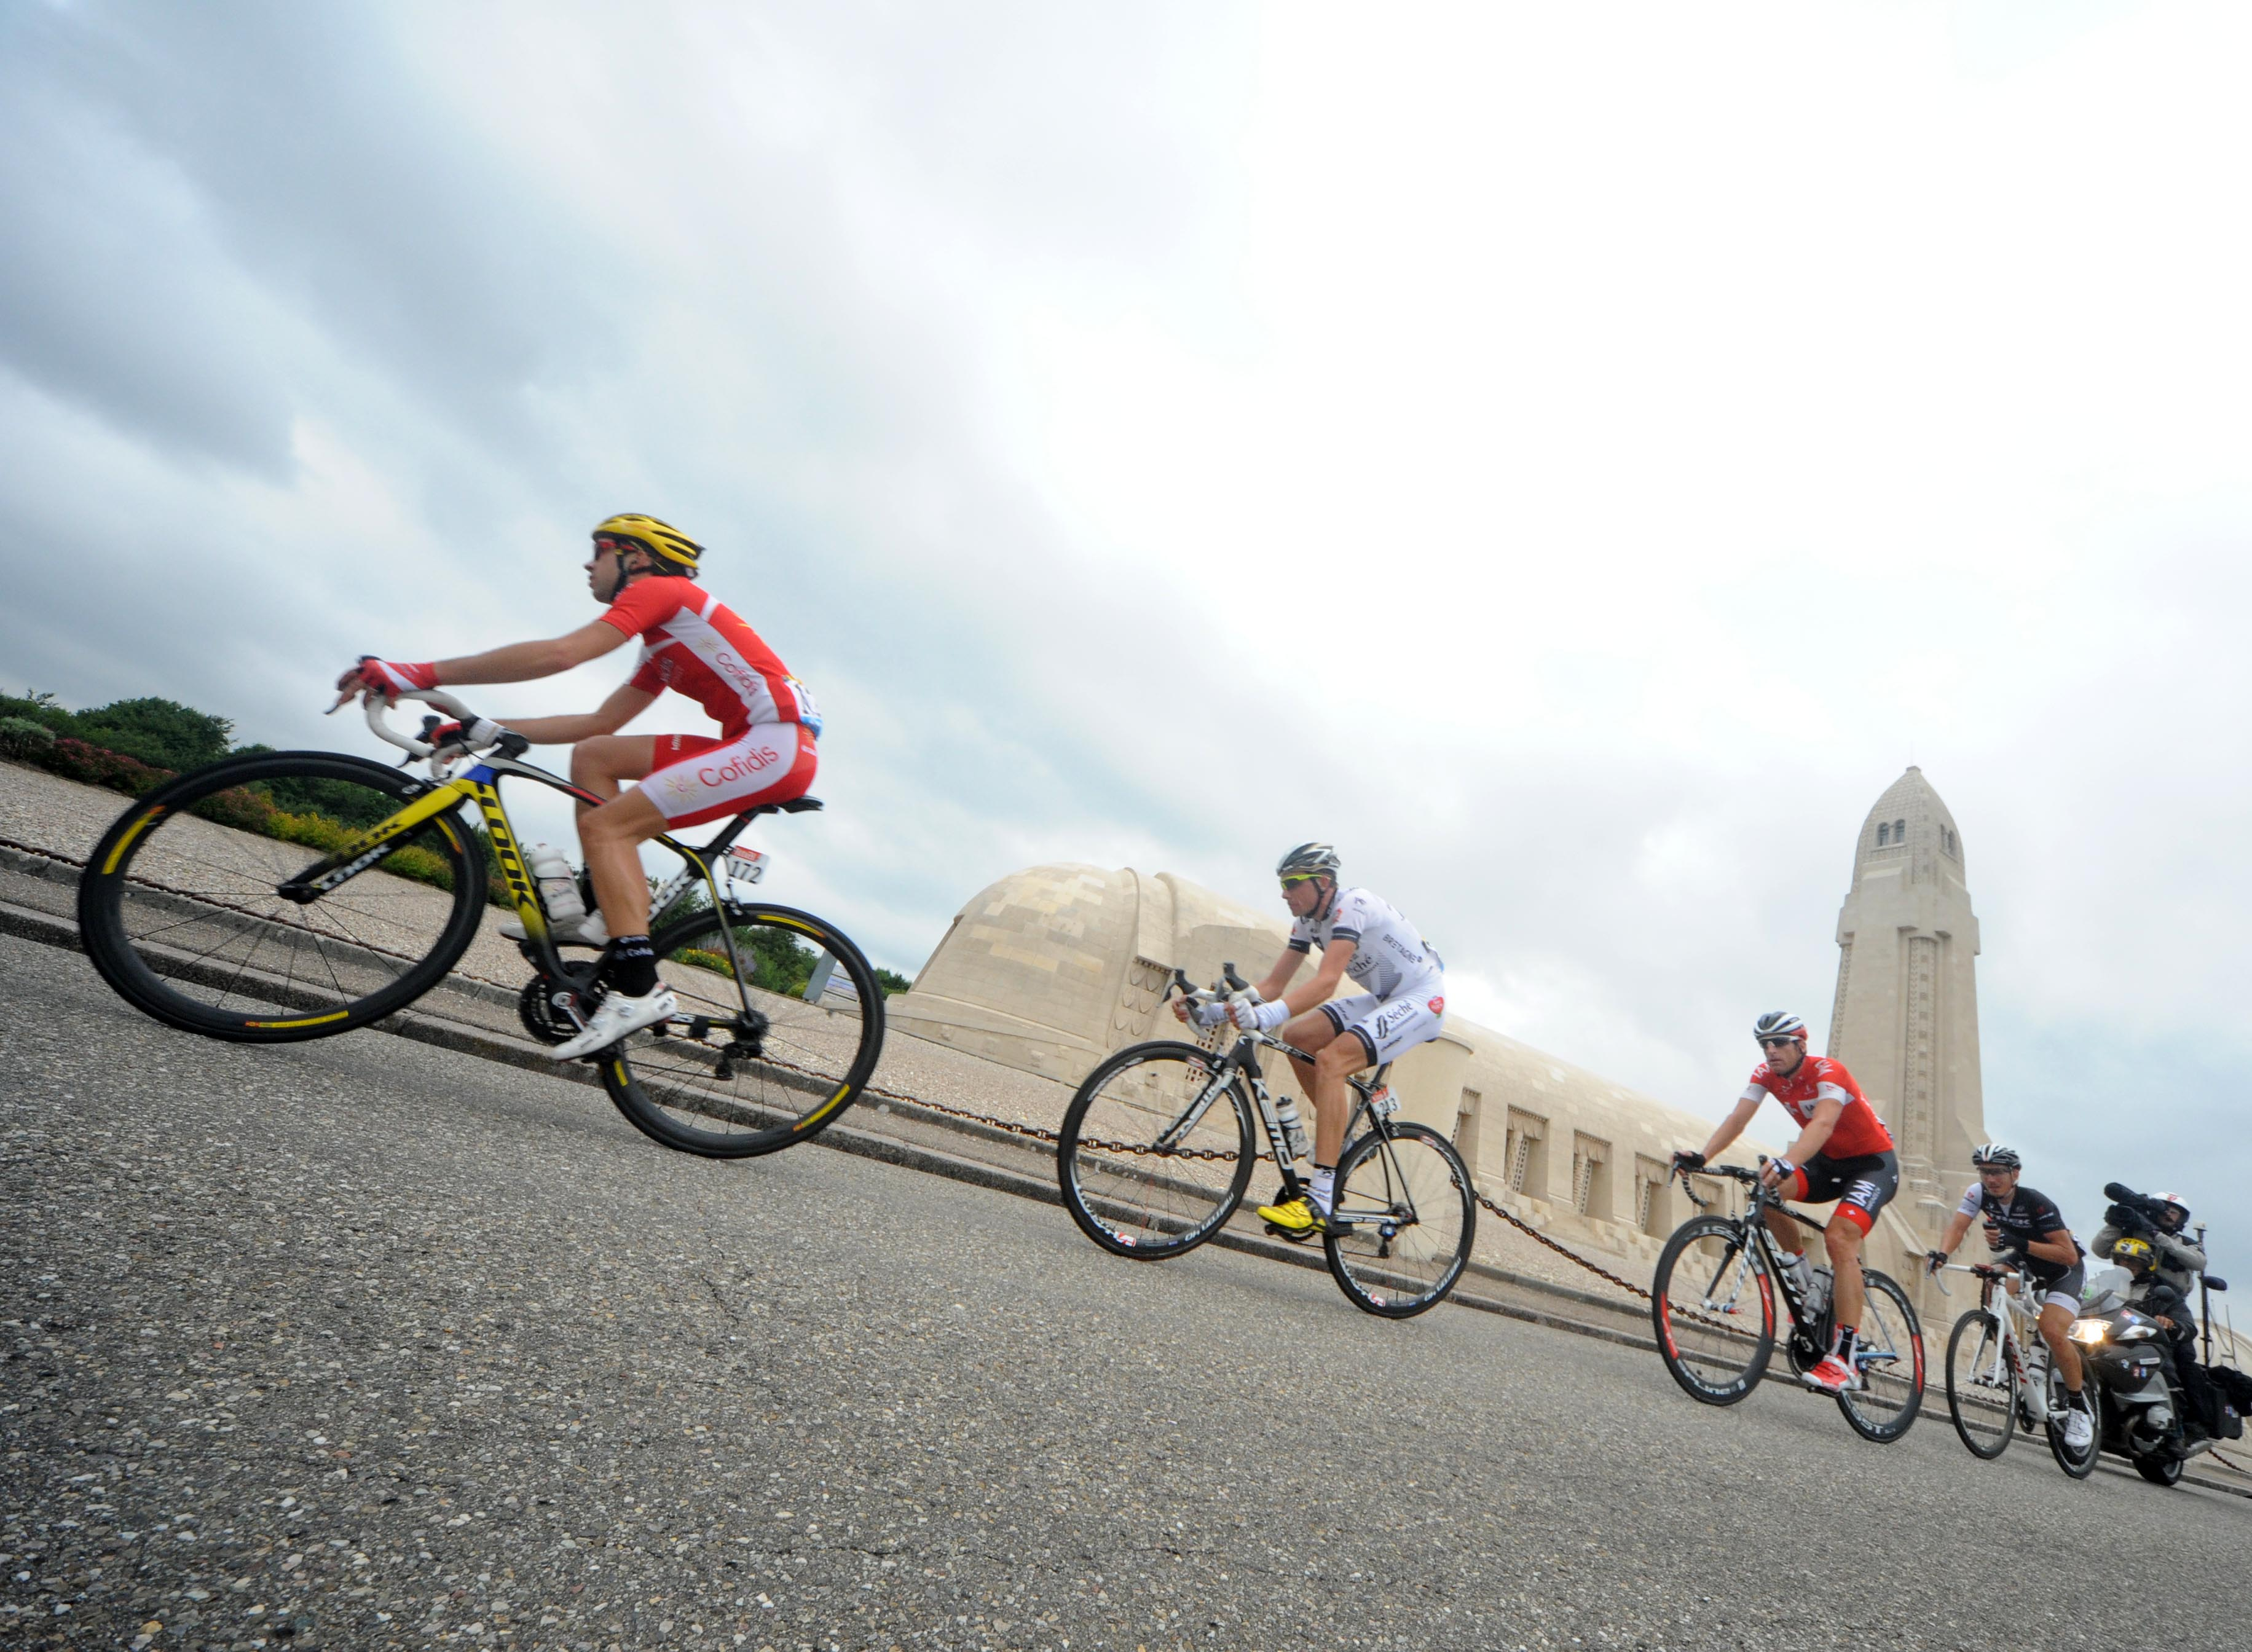 Nicolas Edet (L) of Team Cofidis Solutions Credits rides during Stage 7 of the Tour de France.